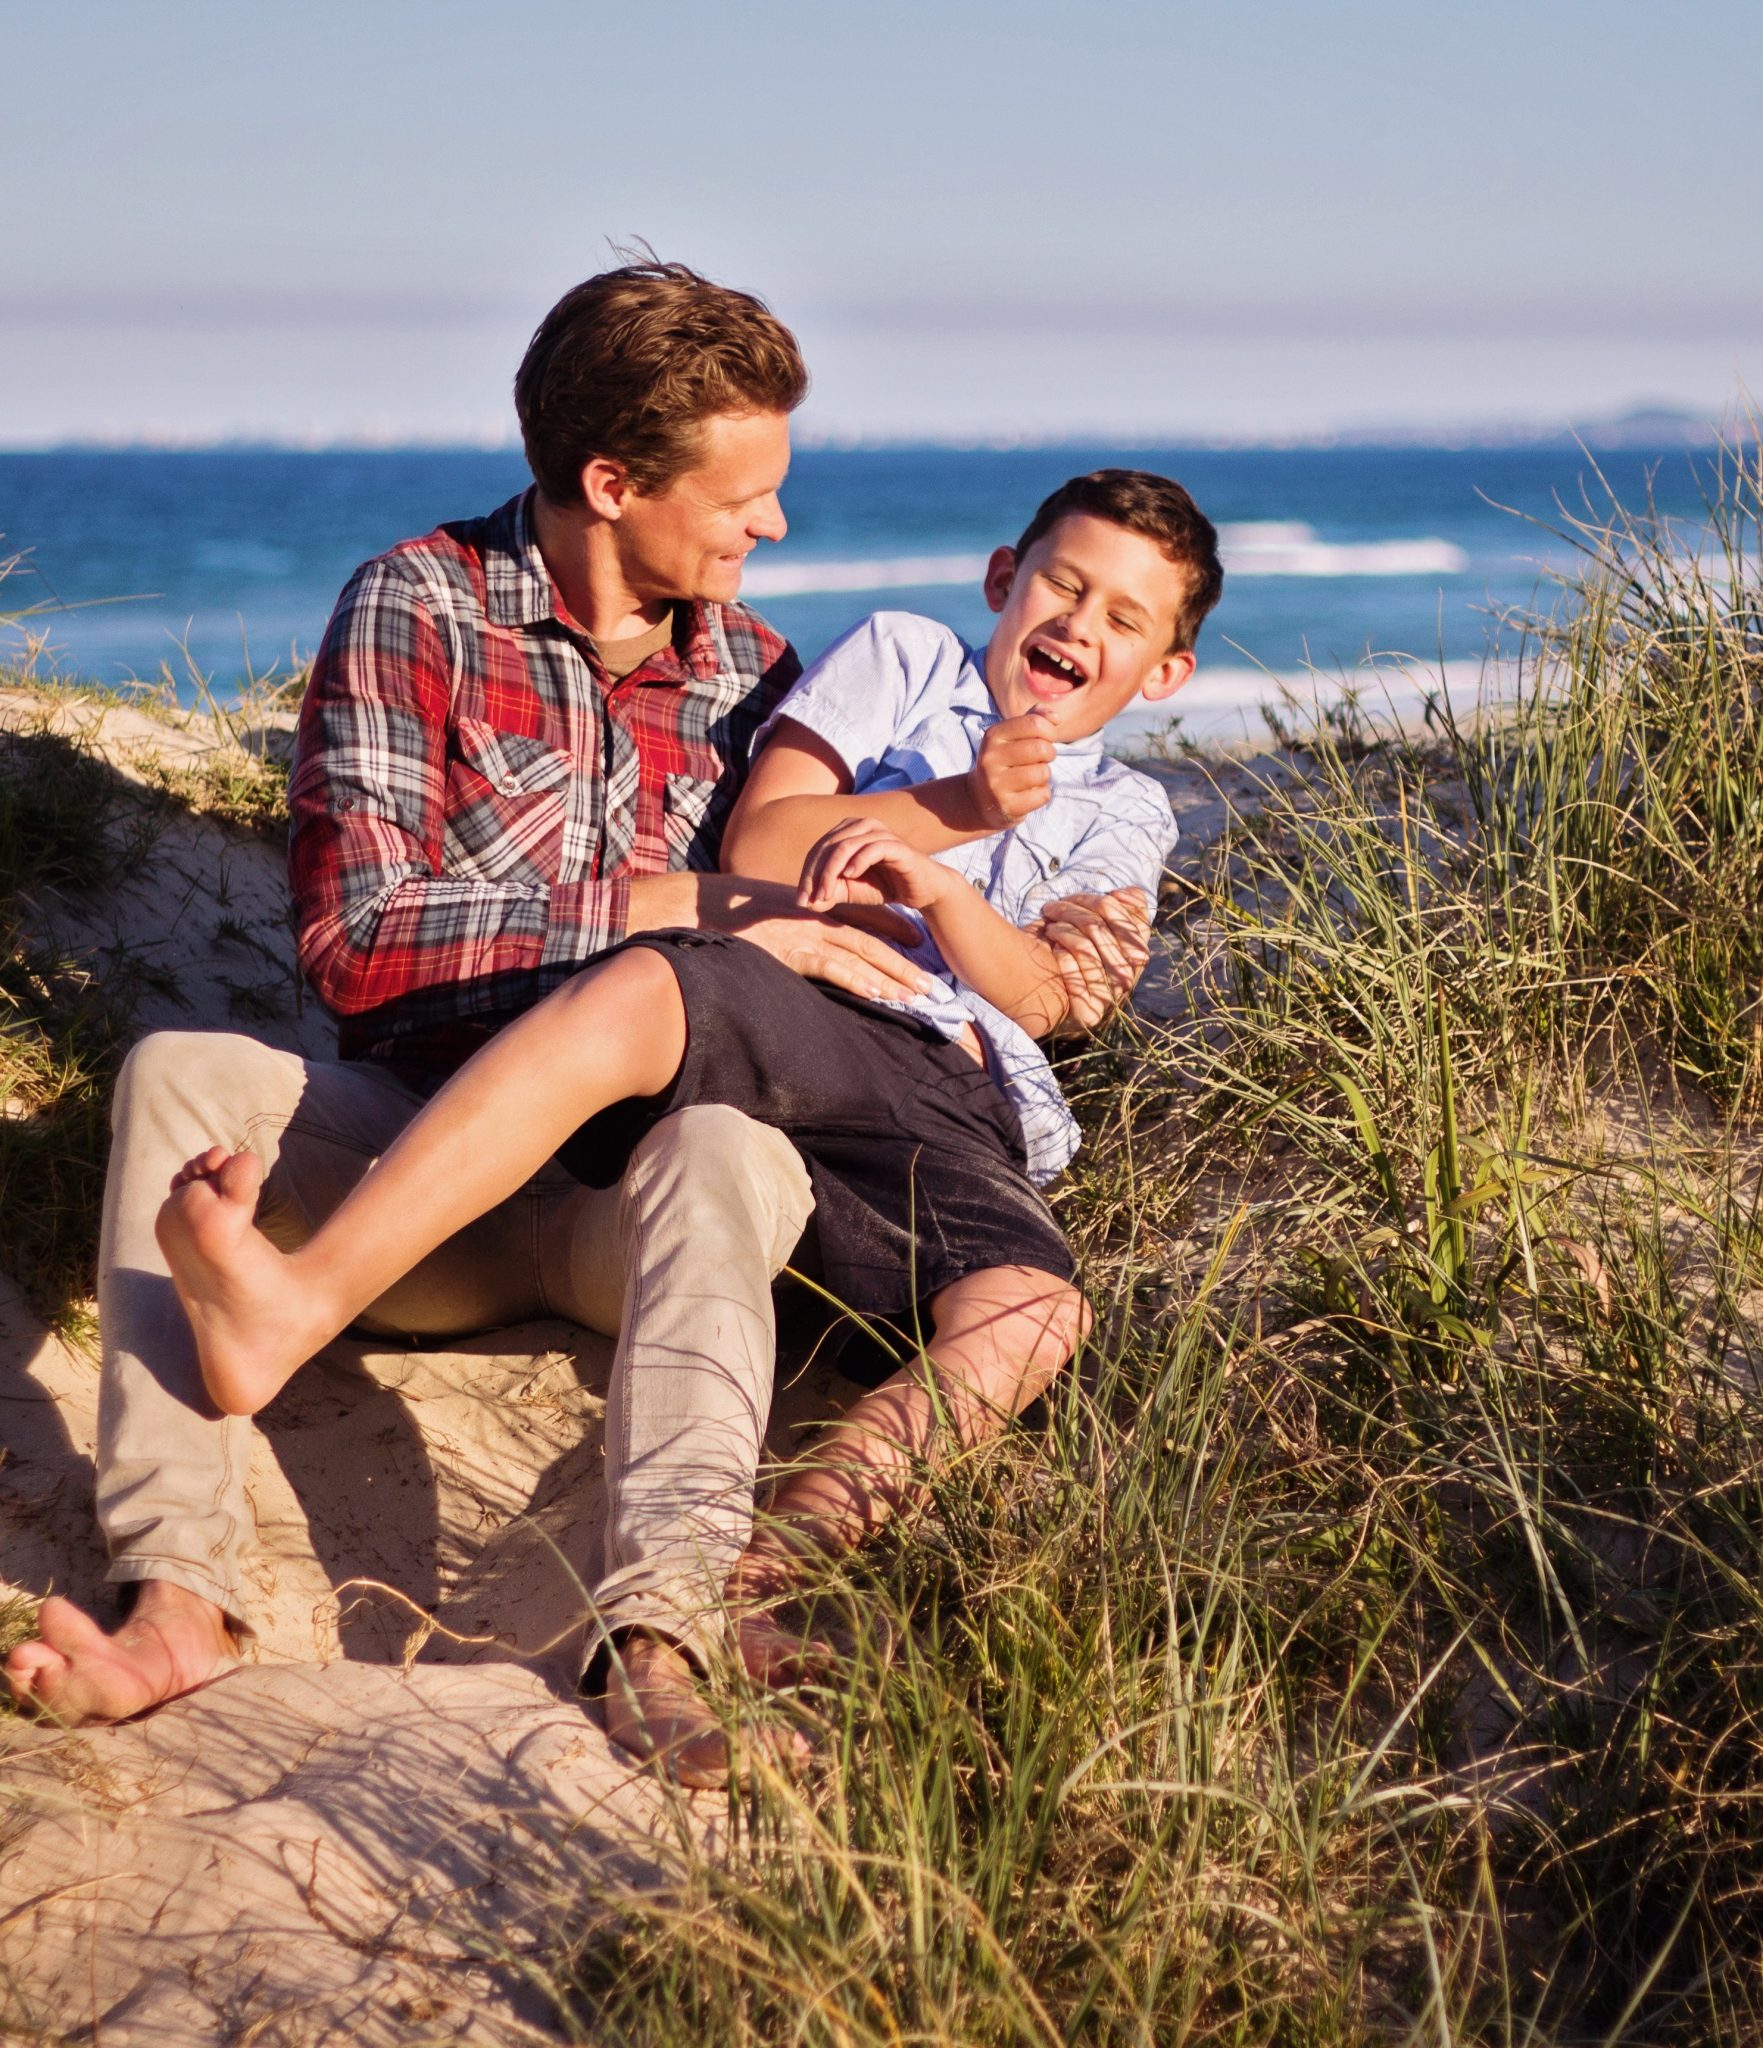 Father and son sitting in sand dunes at the beach, dad is tickling the son who is laughing